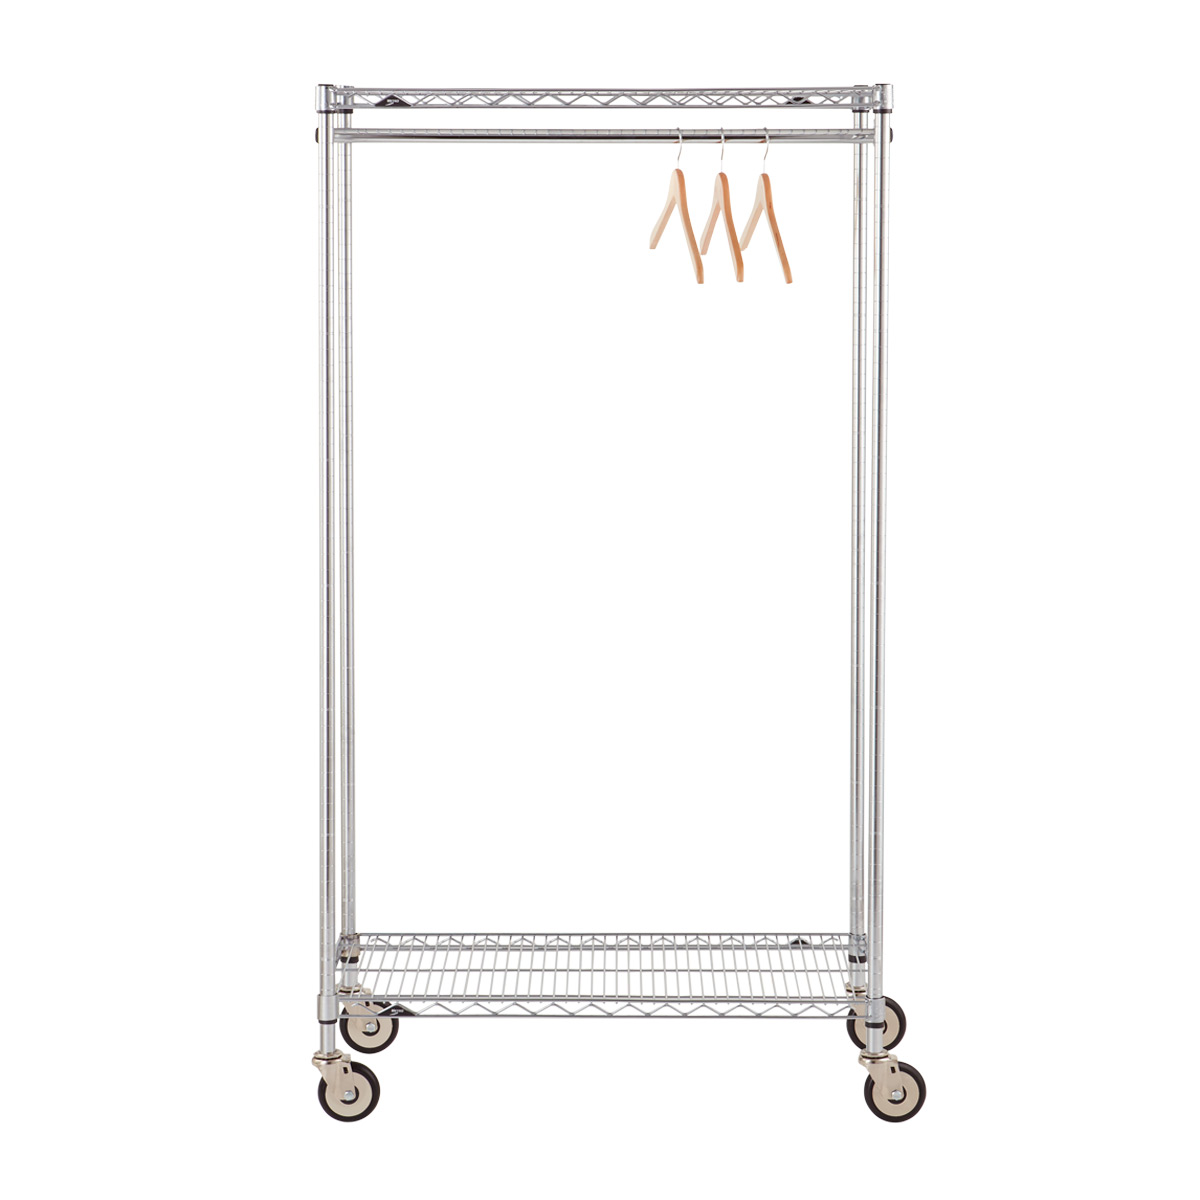 Metro Commercial Industrial Clothes Rack